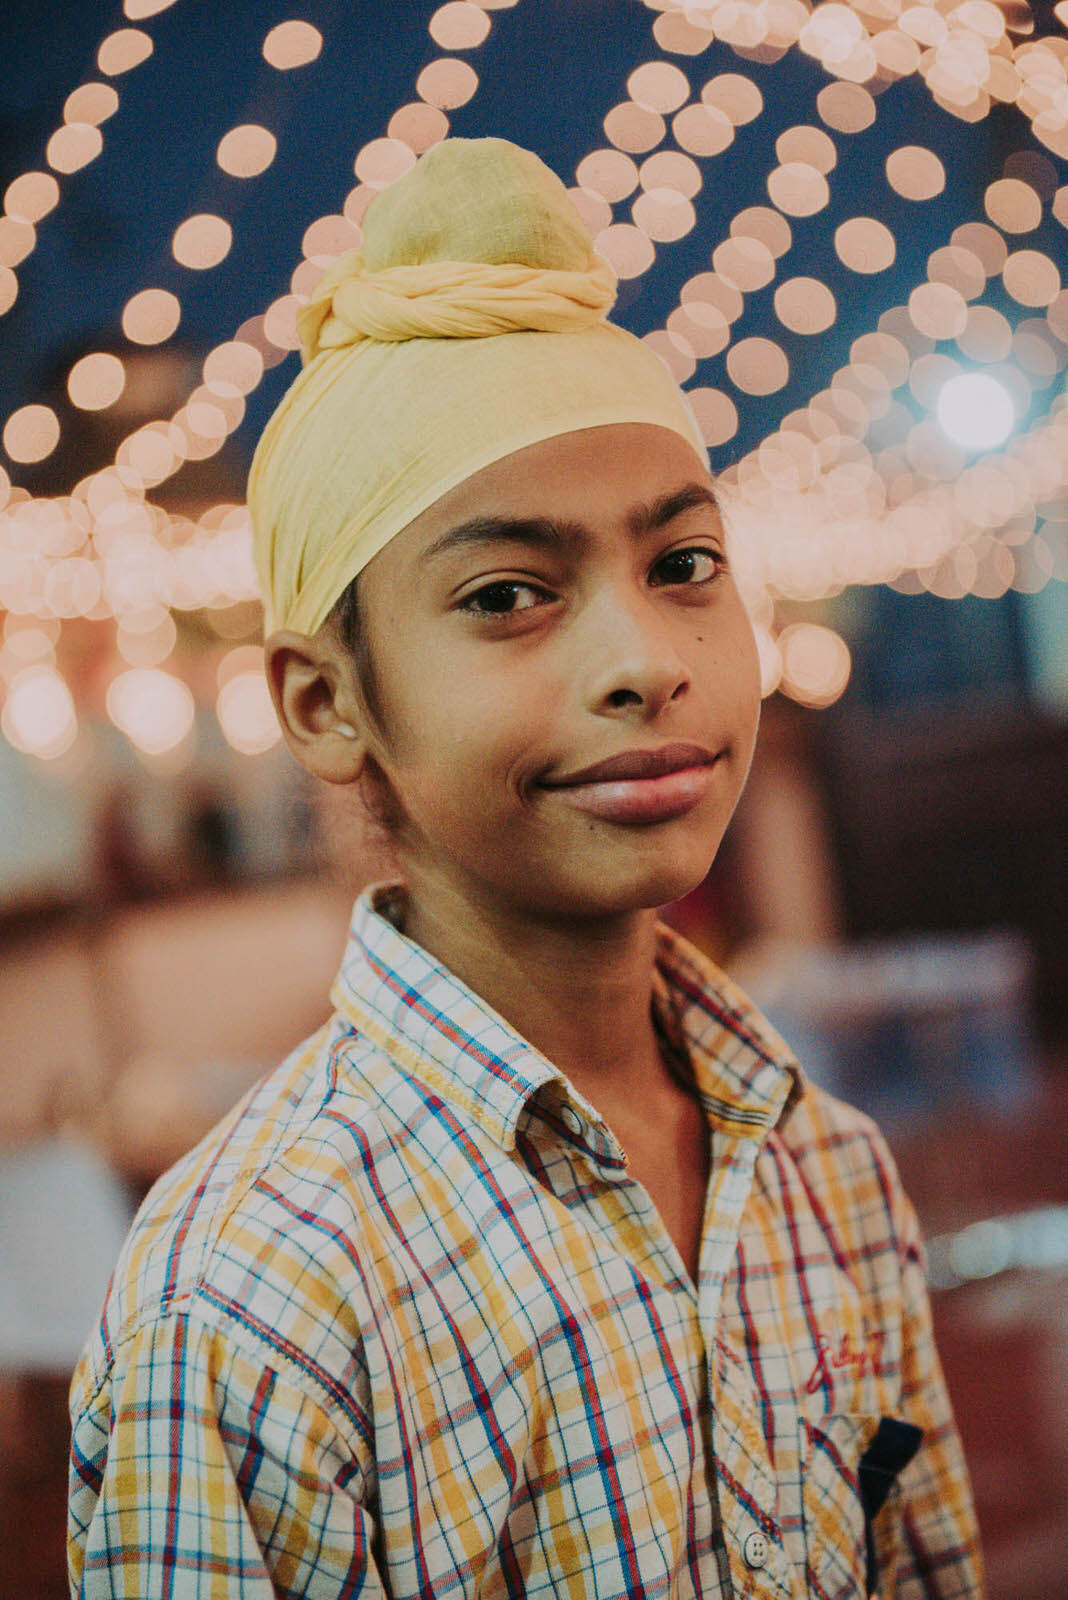 Sikh Boy Portrait Punjab India.jpg